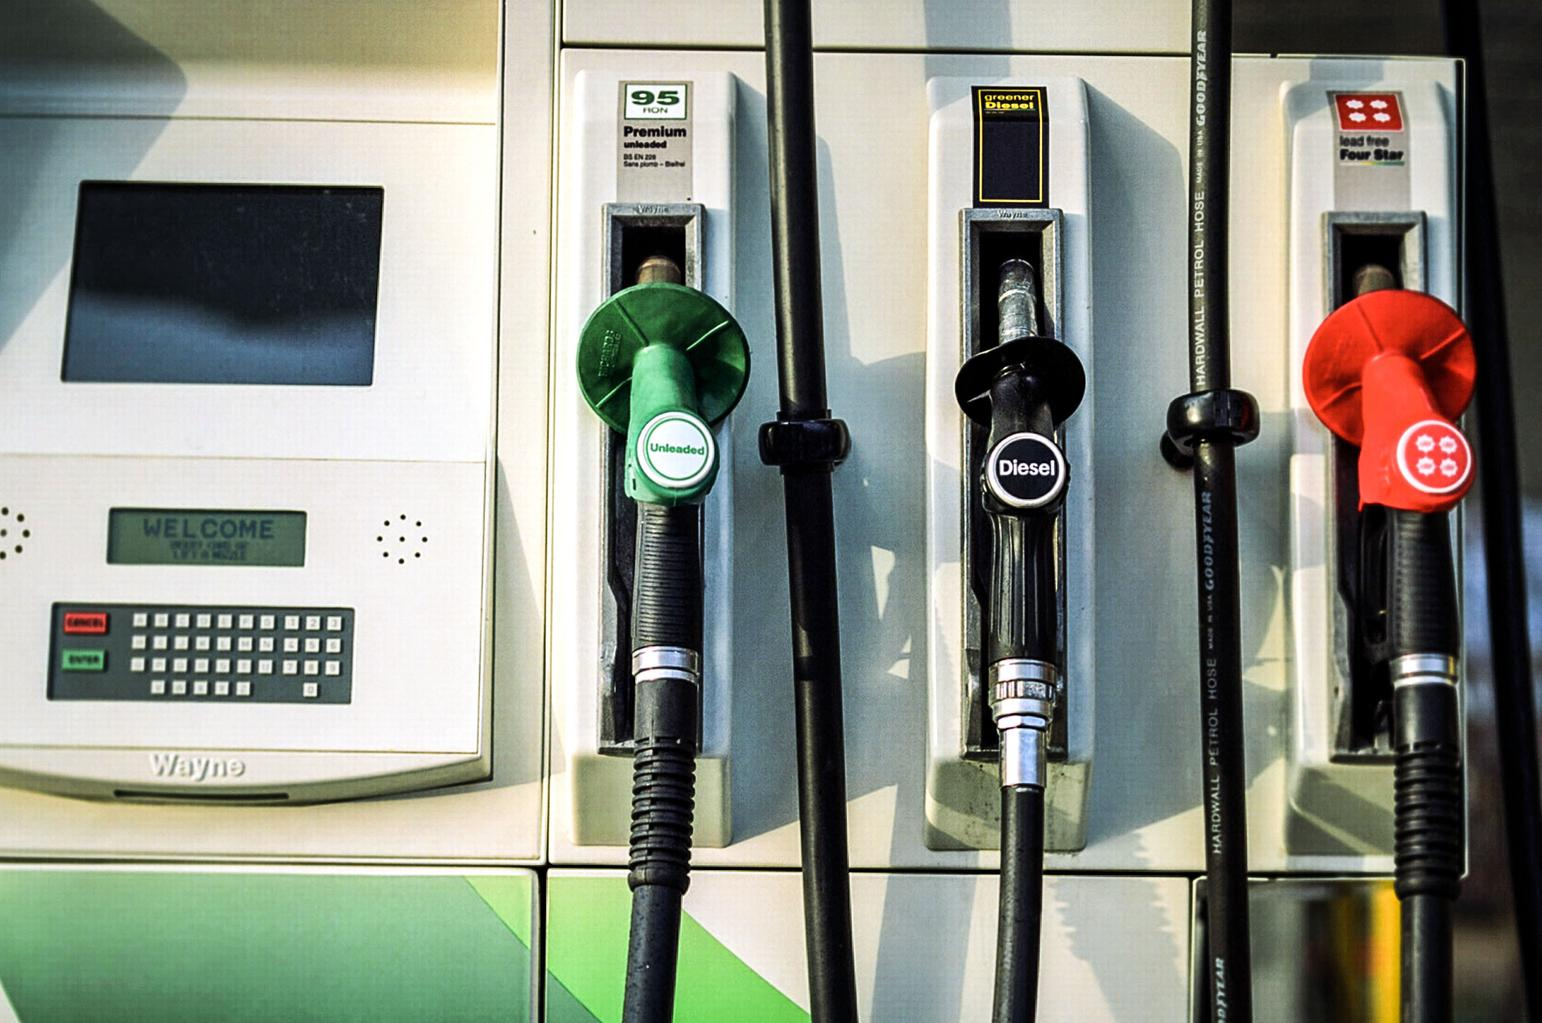 What to do if you put the wrong fuel in your car